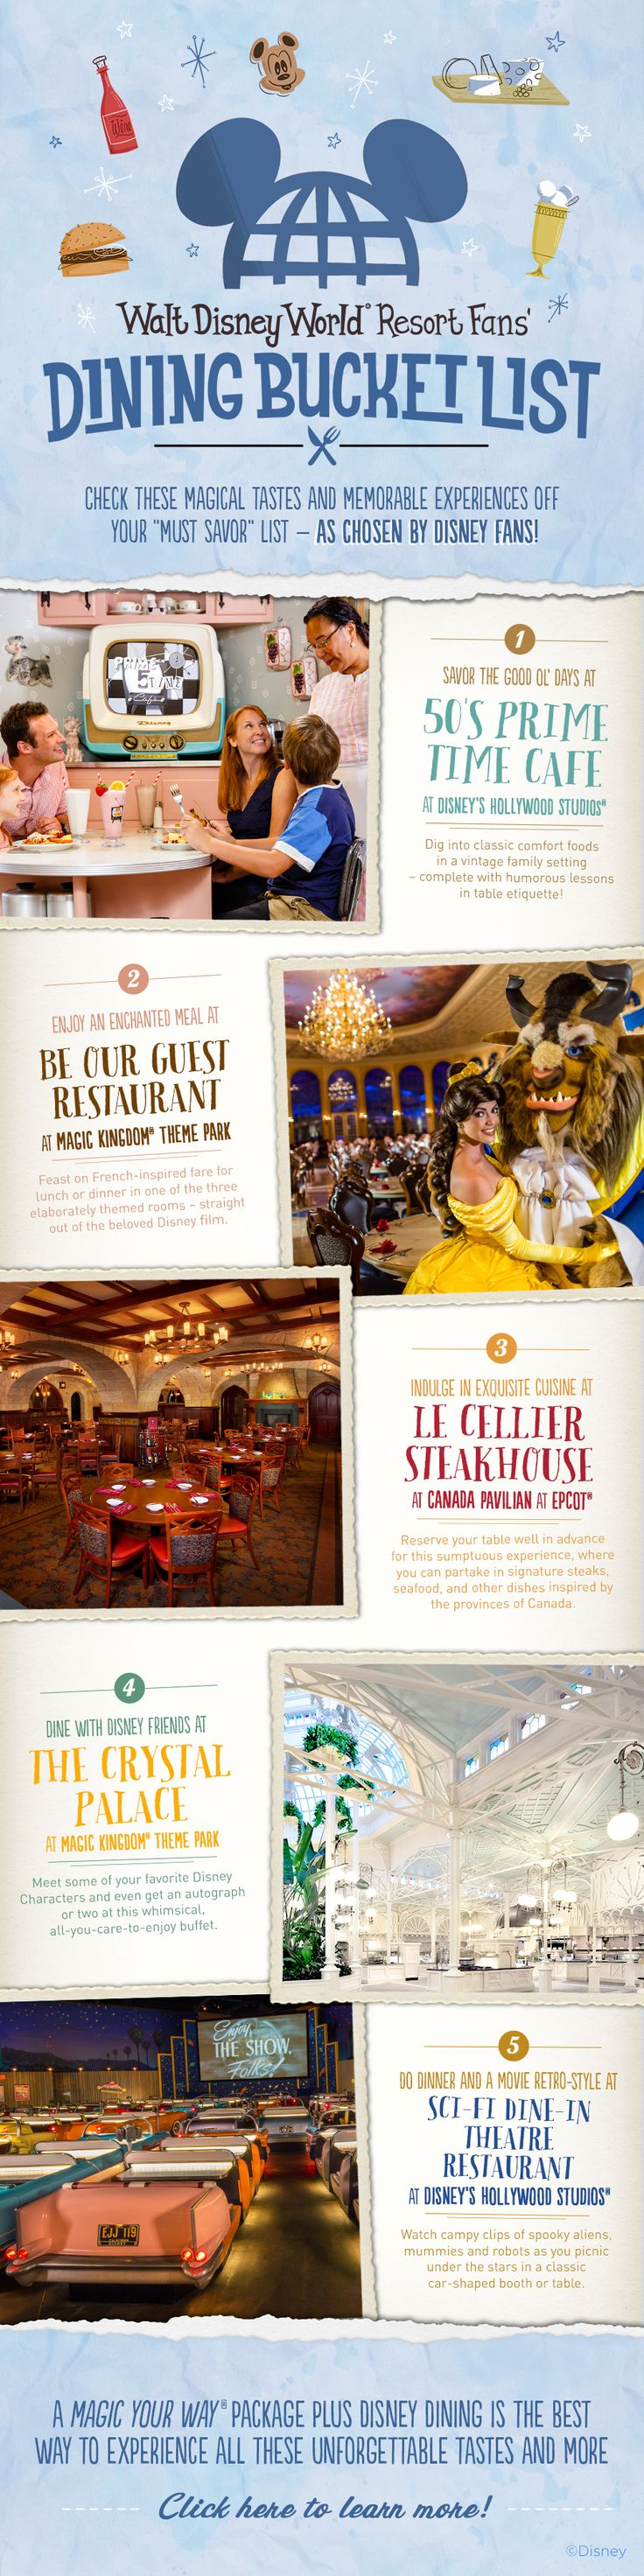 Been to them all!! Walt Disney World Resort Fans' Dining Bucket List. #vacation #tips #tricks #BeOurGuest #BeautyandtheBeast #DisneyCharacters